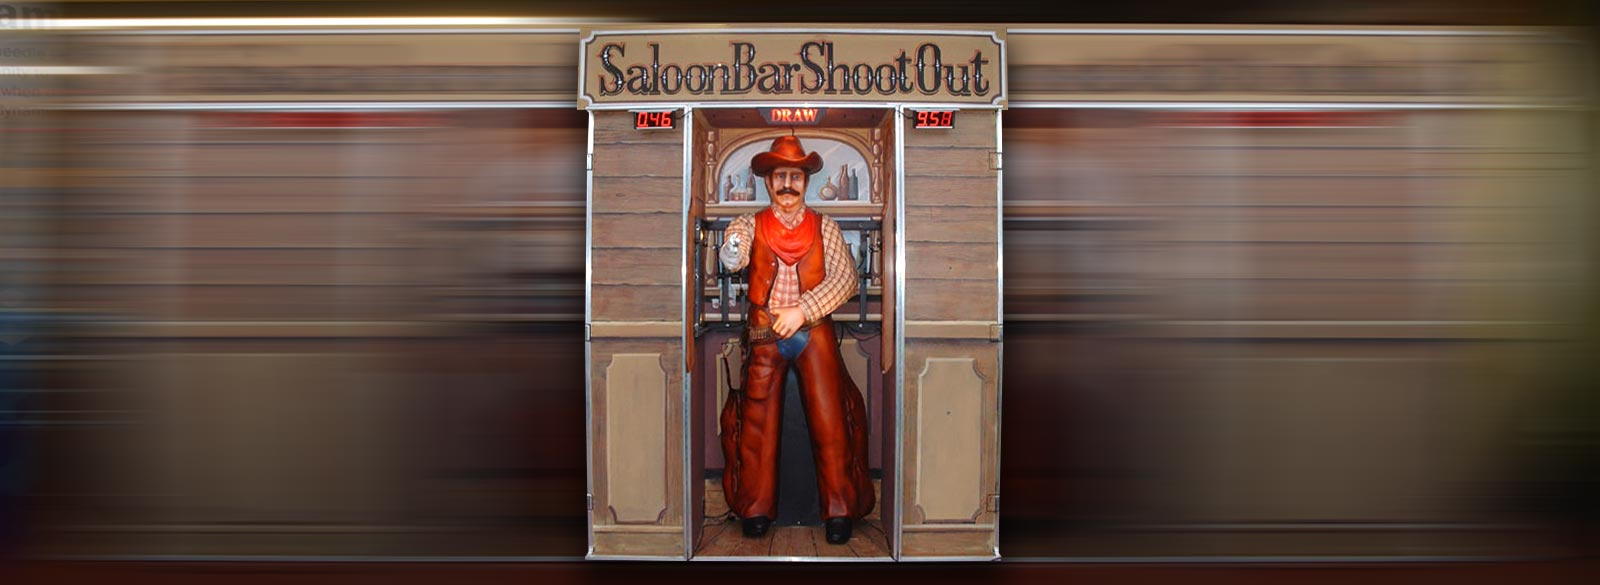 Saloon Bar Shoot Out